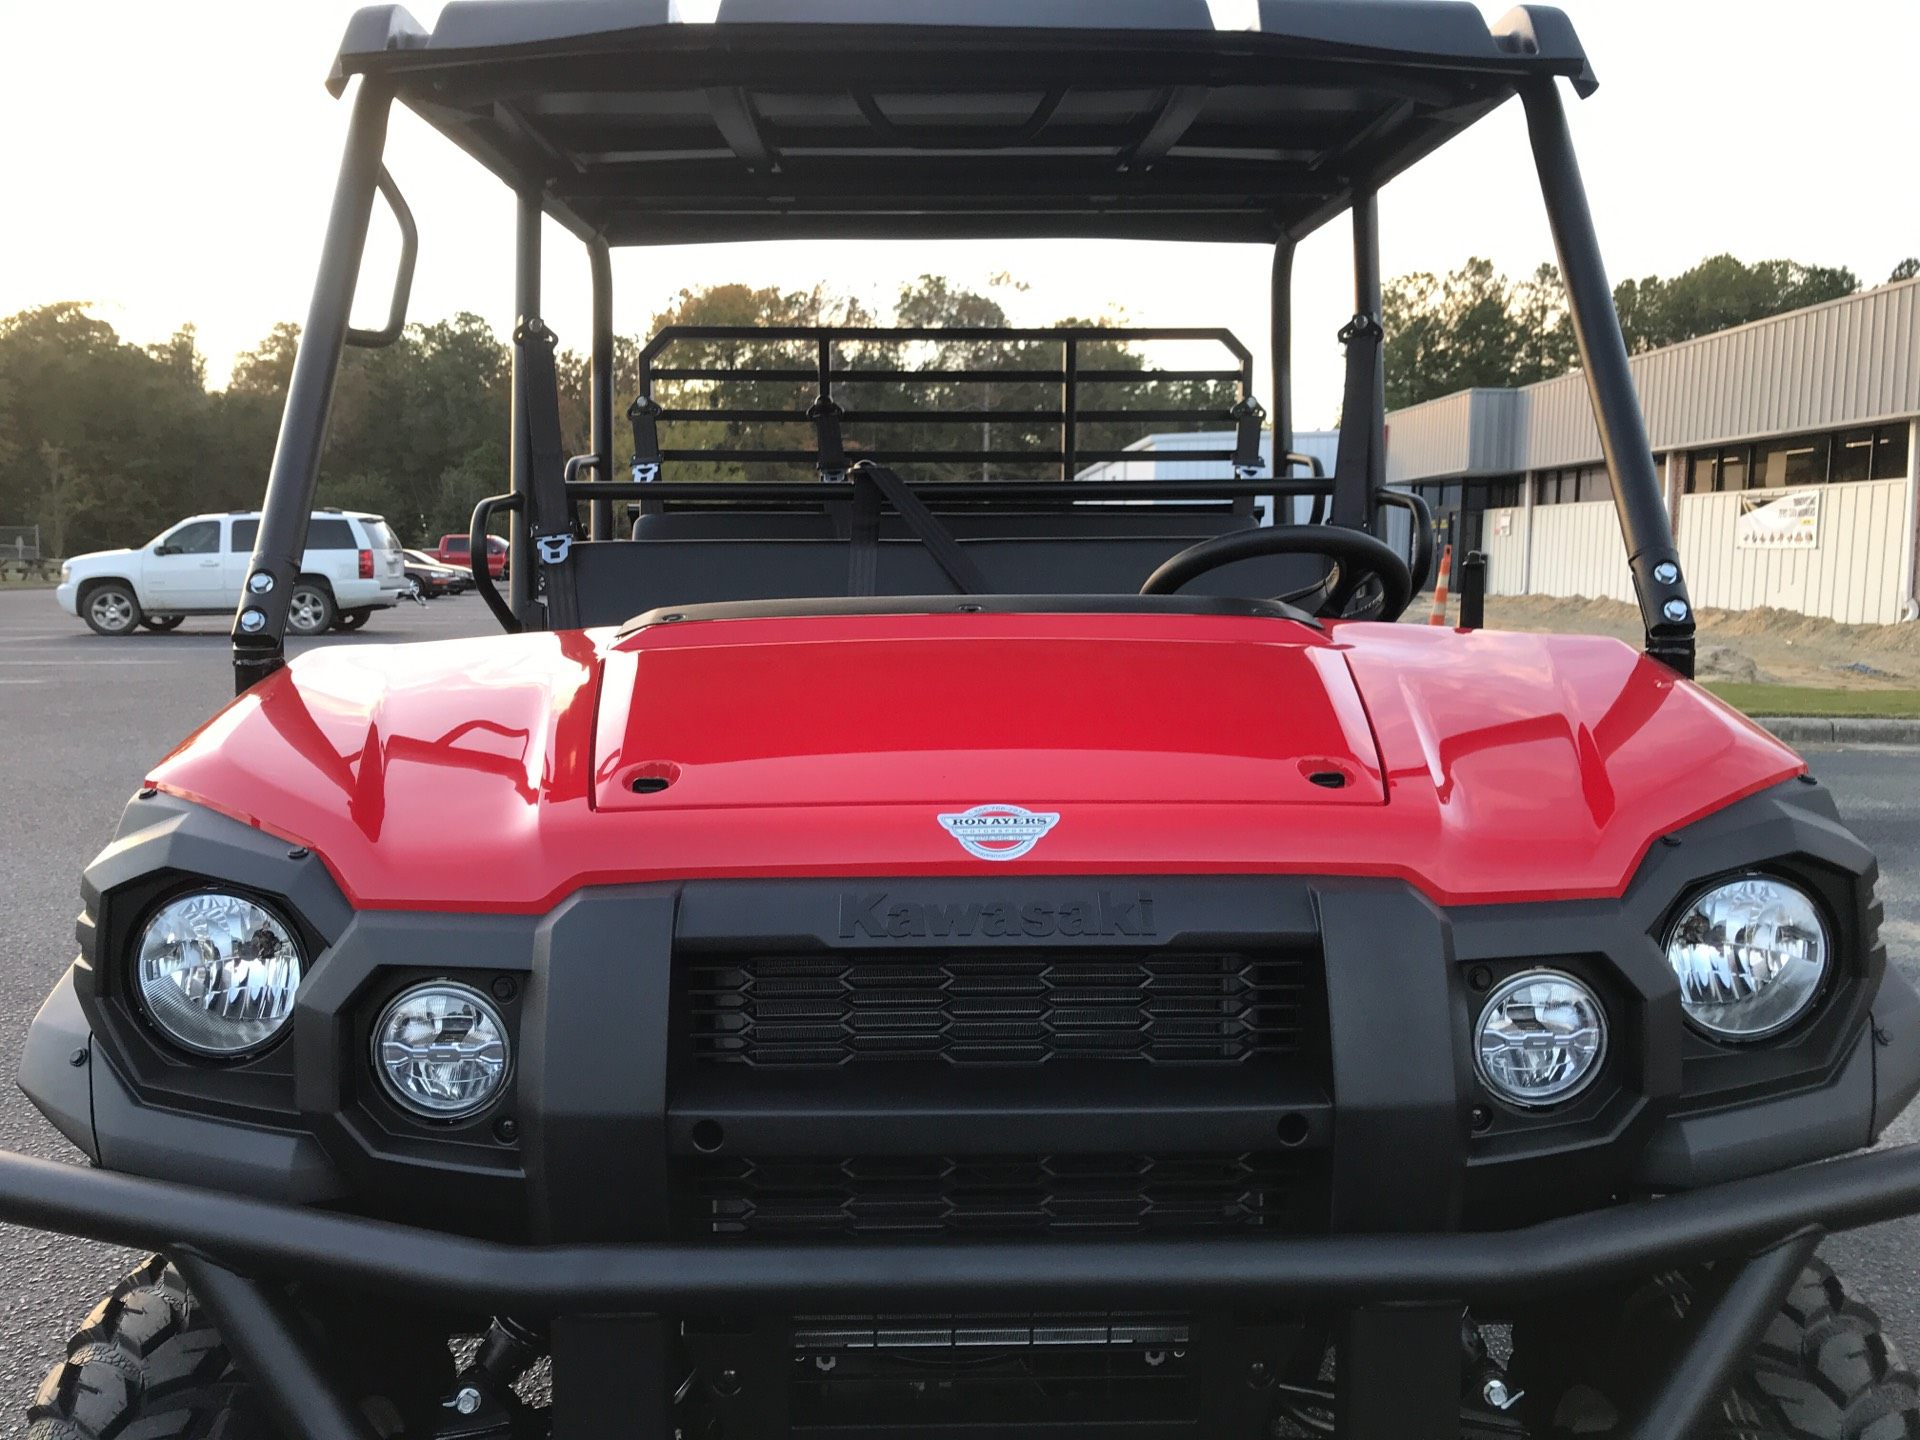 2020 Kawasaki Mule PRO-FXT EPS LE in Greenville, North Carolina - Photo 13